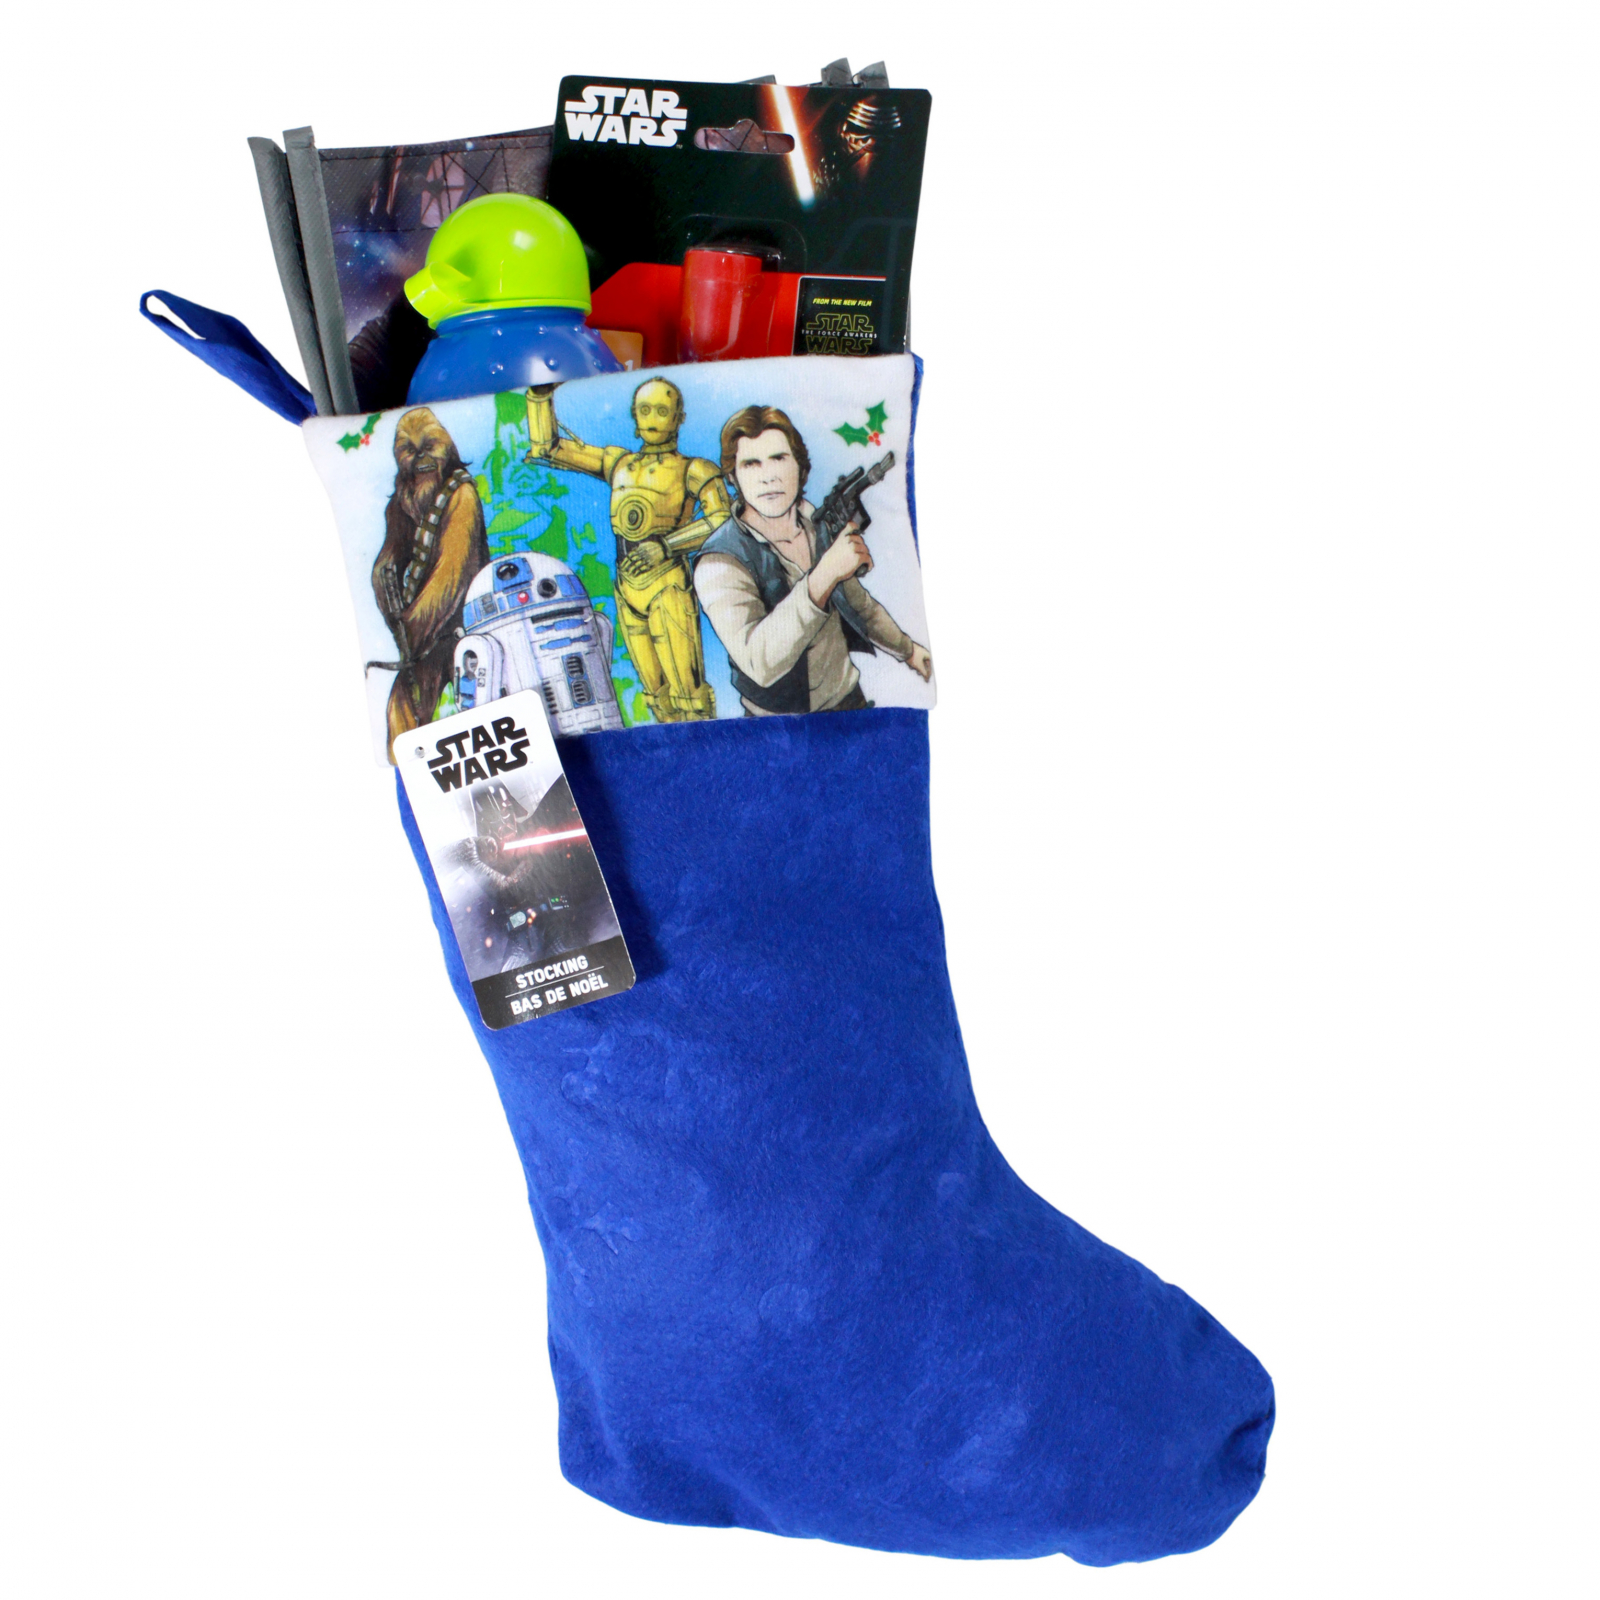 Star Wars Kids Christmas Stocking Filled with Toys 4 Pieces